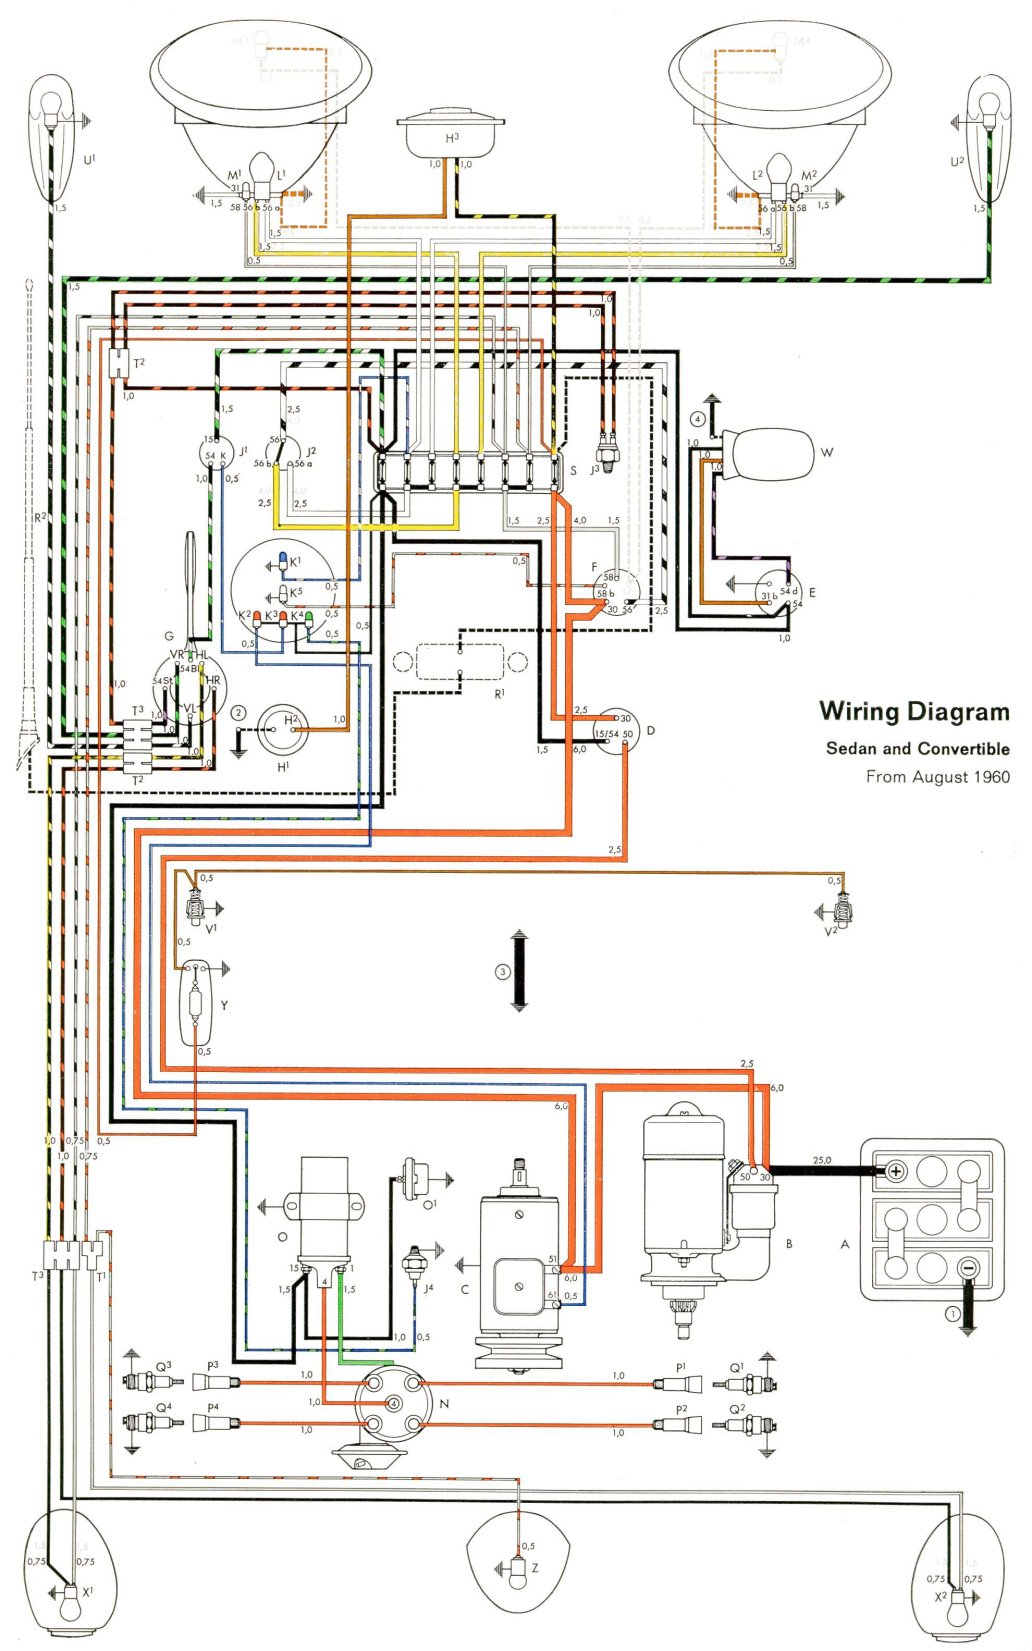 bug_61 1961 beetle wiring diagram thegoldenbug com VW Alternator Hook Up at bayanpartner.co